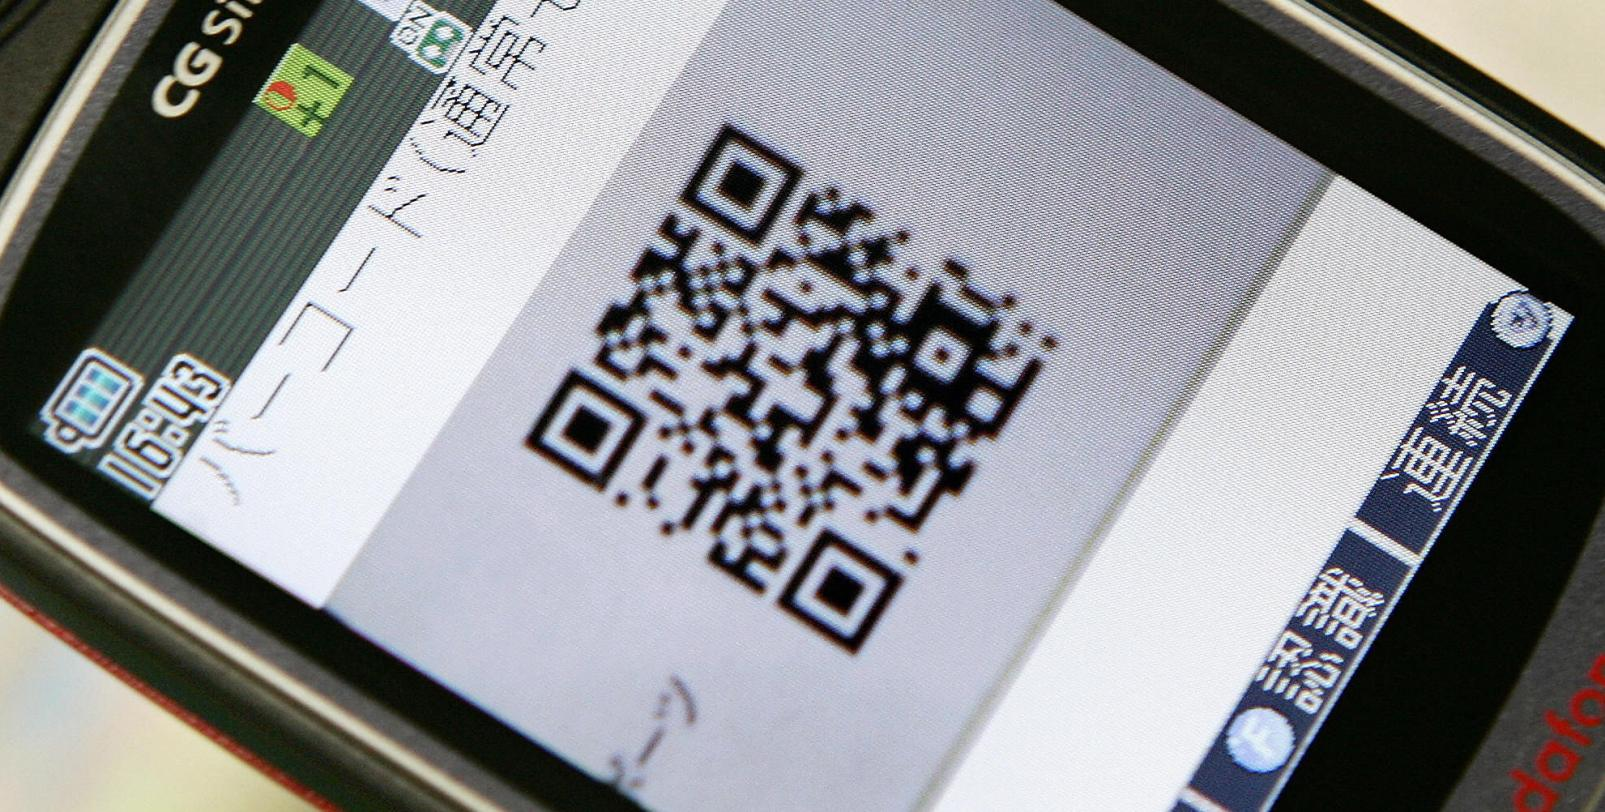 QRmovie puts adaptive, animated QR codes in film